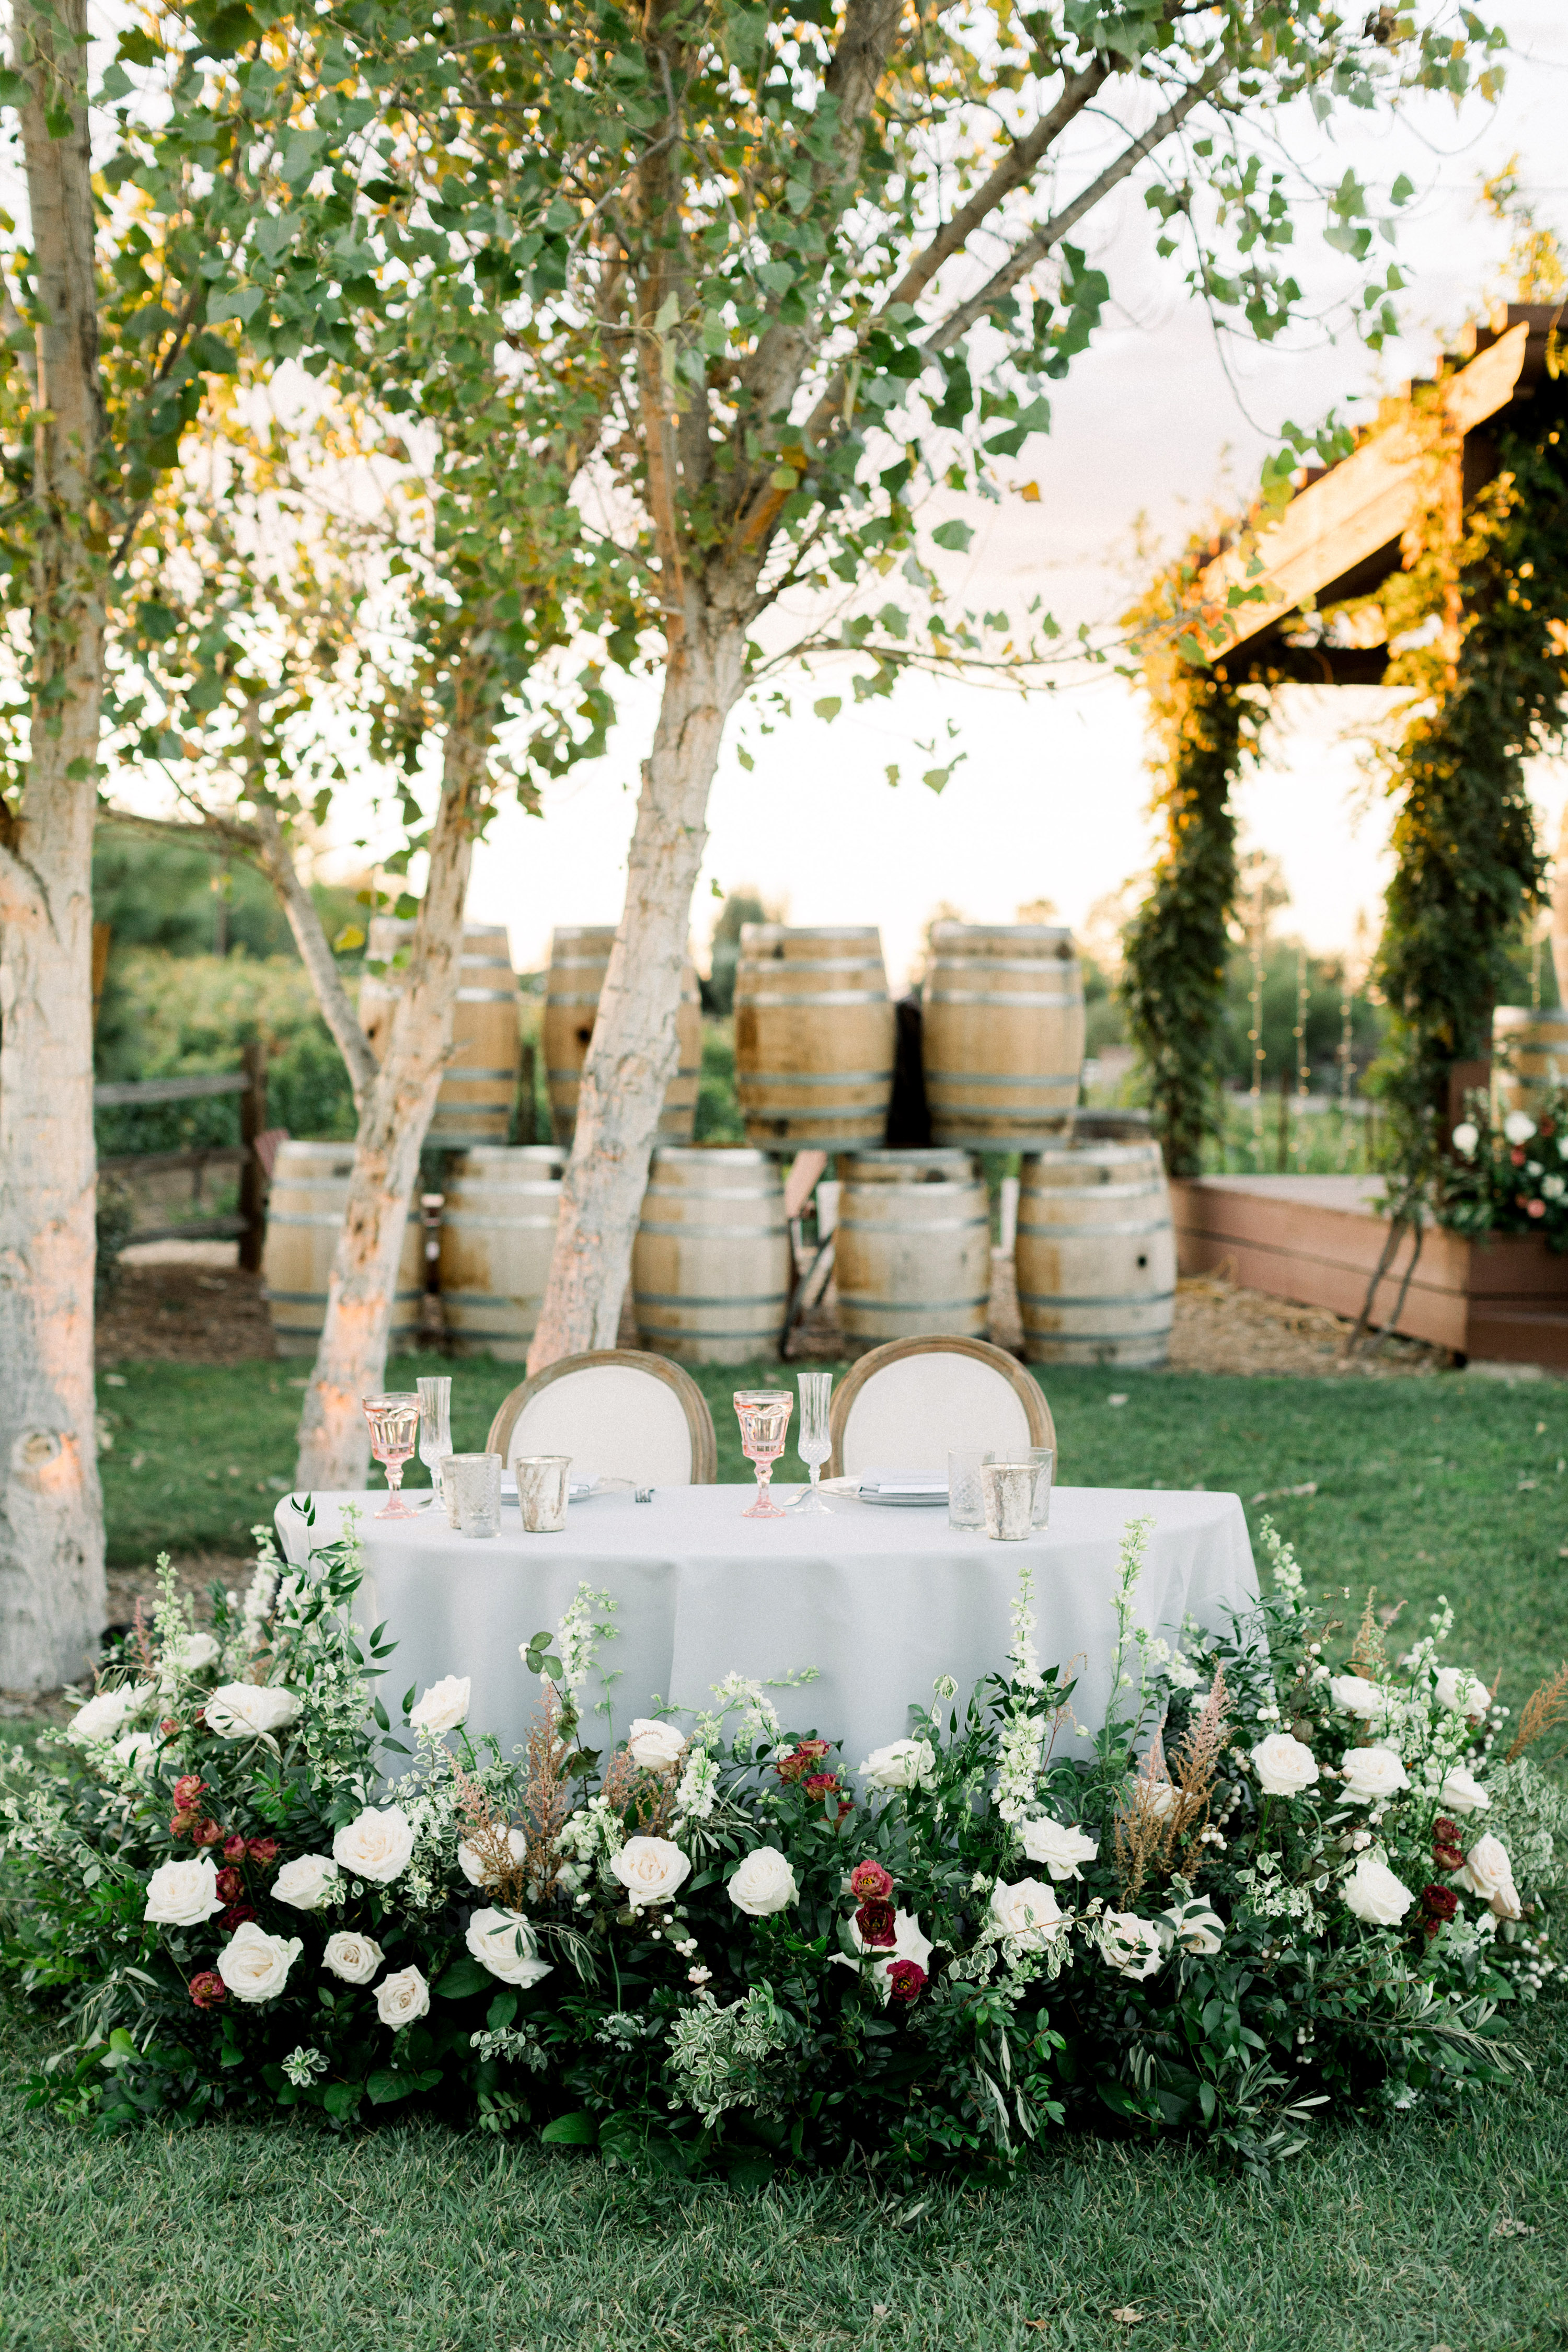 sweetheart table outdoor with barrels backdrop and roses around foot of table